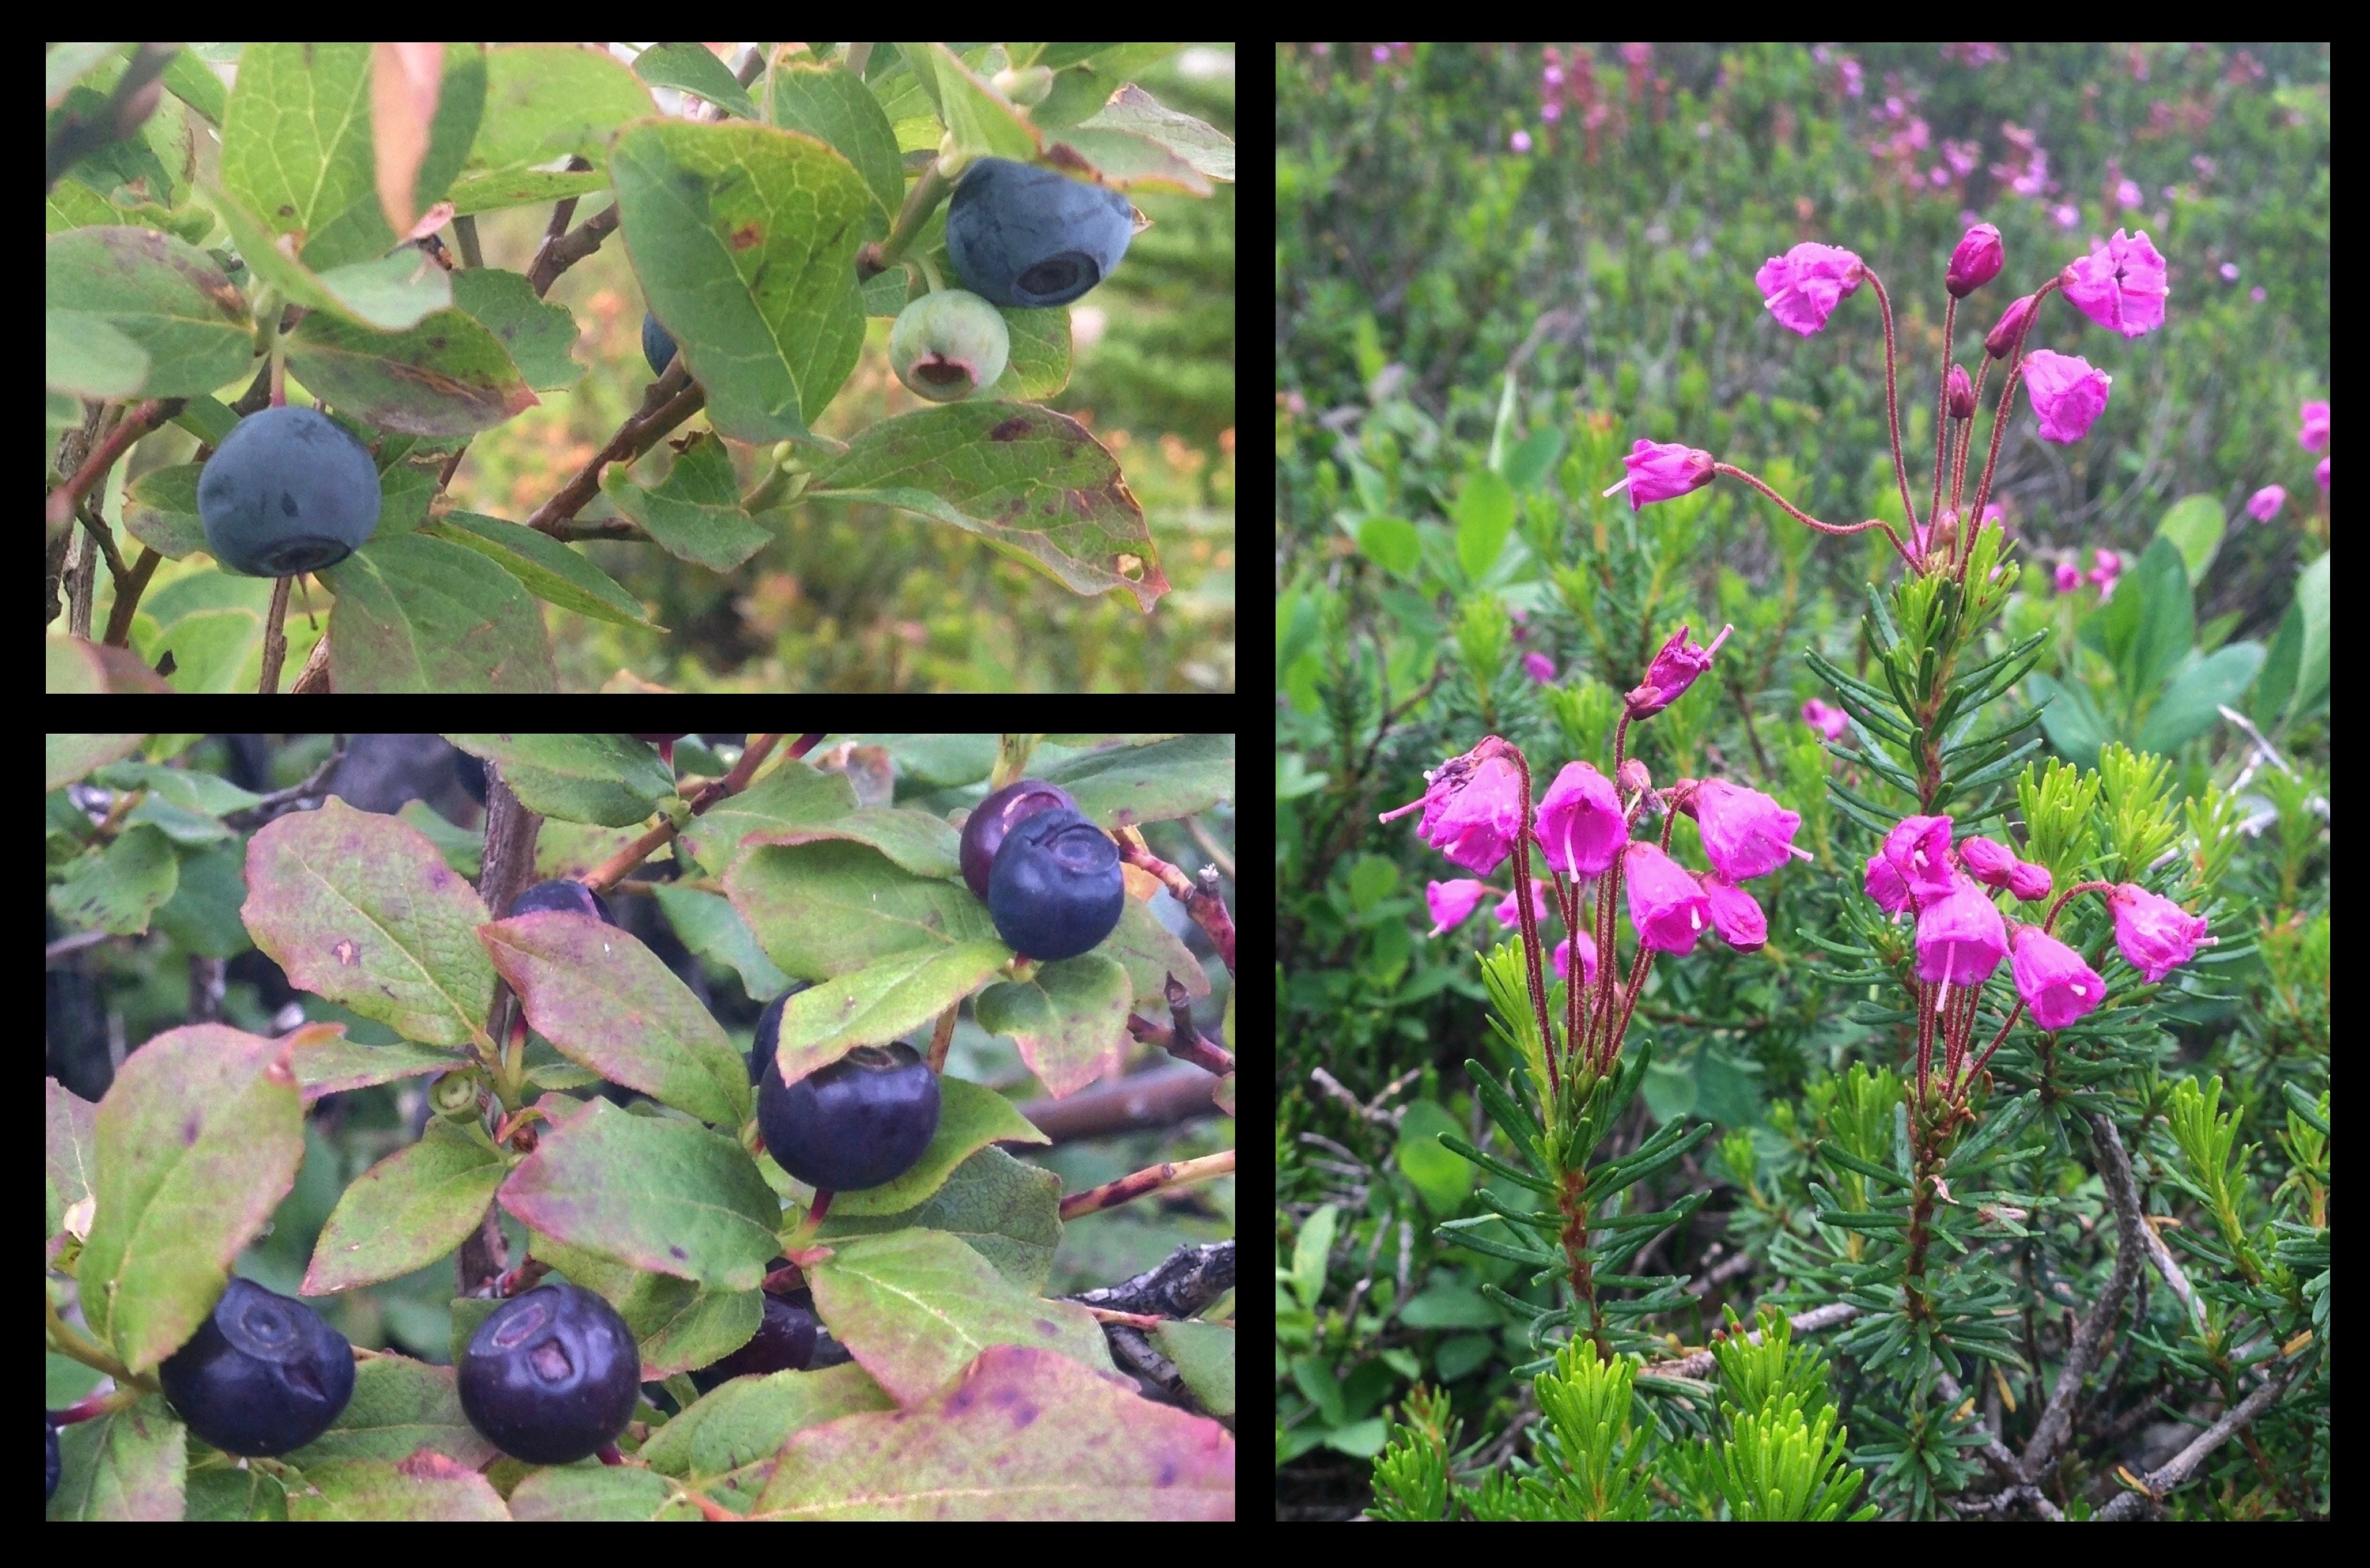 Granite Mountain's signature blueberries (Vaccinium sp.) (upper and lower left) mingle with pink mountain-heath (Phyllodoce empetriformis) (right) throughout the alpine meadow and rock garden to provide a combination of treats for the sight ad taste. The primary blueberry species on the mountain is the Cascade blueberry (V. deliciosum) (top left), which bears downward facing, powder-coated, true blue berries that are almost hidden by its leaves. Similar looking and equally tasty blueberry cousins are also present, including the tall, or, black huckleberry (V. membranaceum) (lower left), which is distinguished by its purple-hued berries that lack a powdery coating and are borne upward and outward above its leaves. Throughout summer, drifts of heath bloom in shades of pink; in autumn, the blueberries continue the display with foliage ranging from smokey purple to blazing red. Granite Mountain Trail, August 29, 2014.